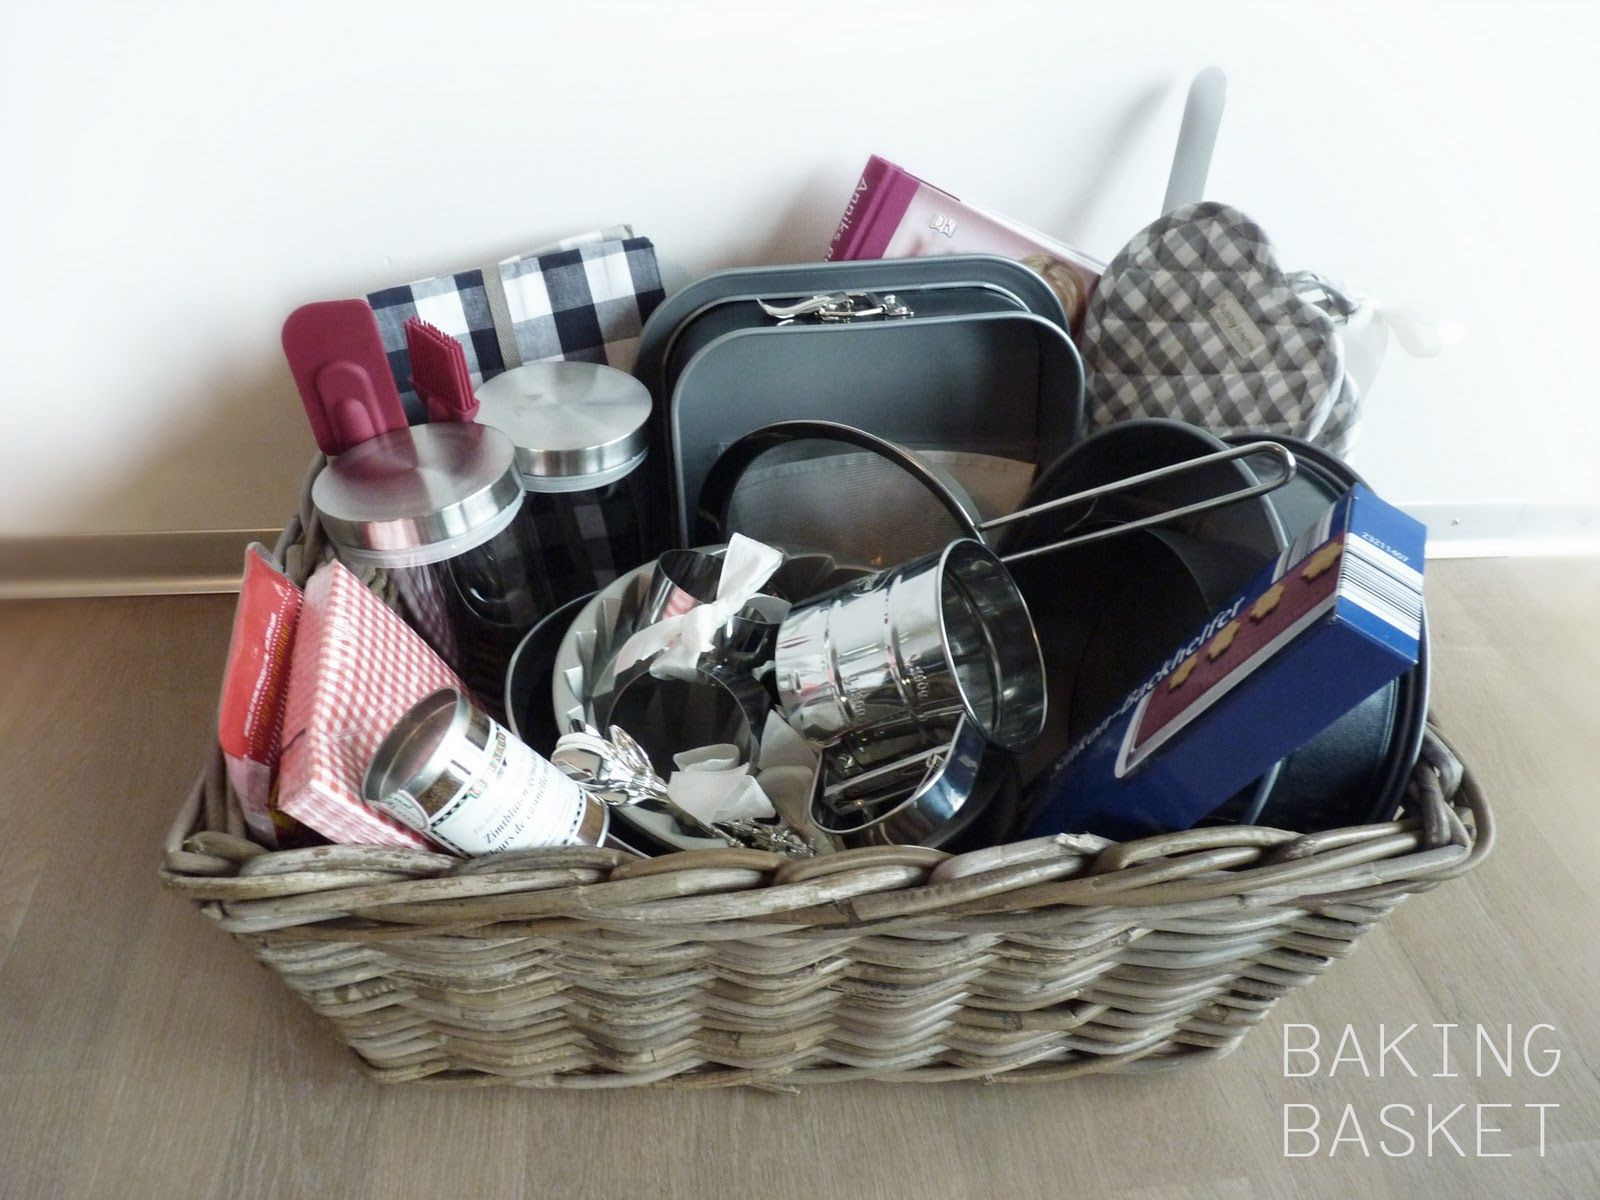 Best ideas about Baking Gift Baskets Ideas . Save or Pin baking t basket ideas Now.